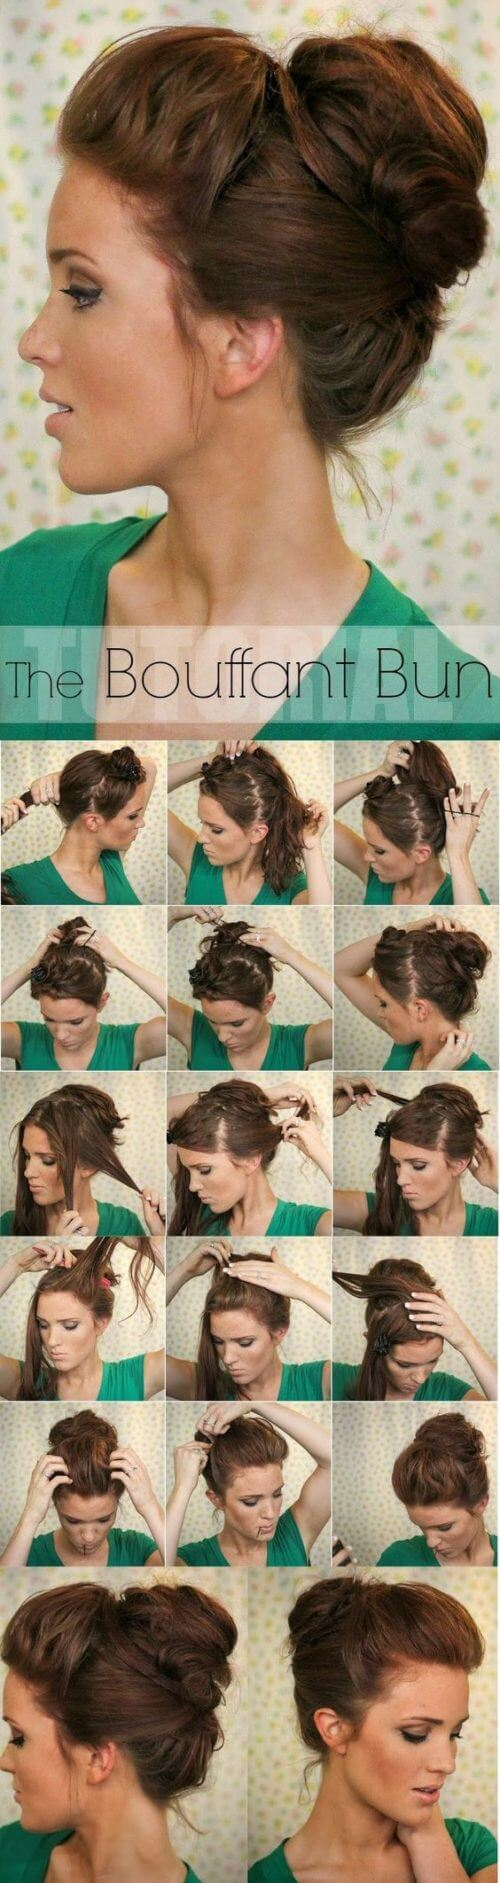 BOUFFANT HAIR BUN STYLE Lovely & Easy Hair Bun Styles Long Hair Inspired From Celebrities